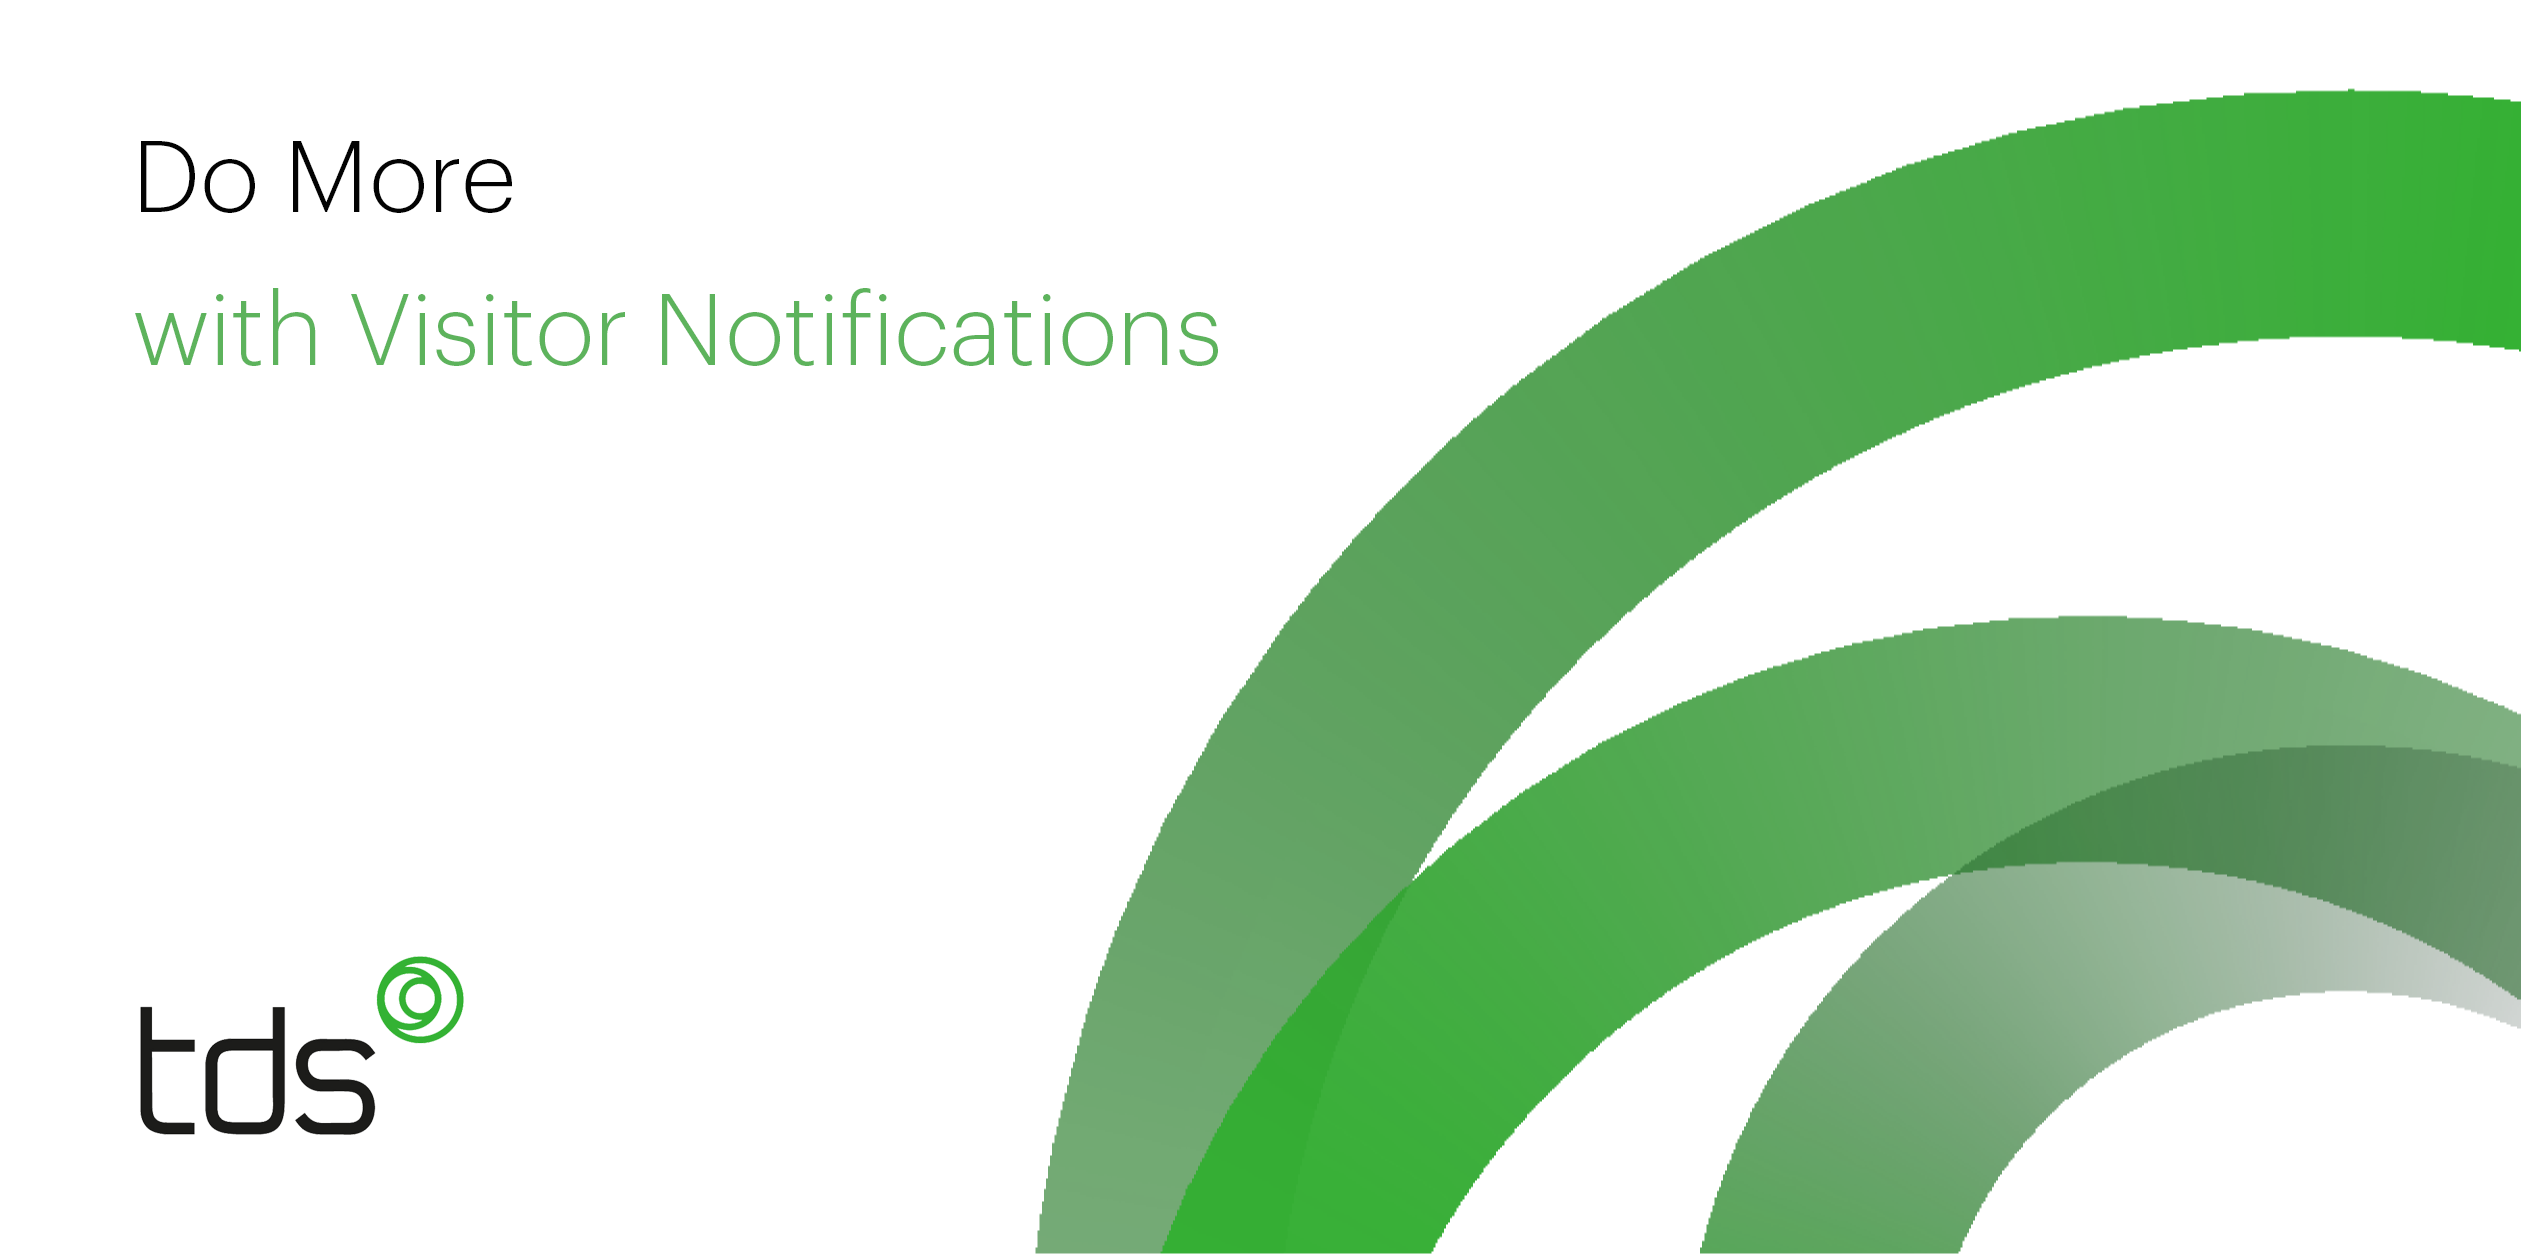 Do More With Visitor Notificaitons